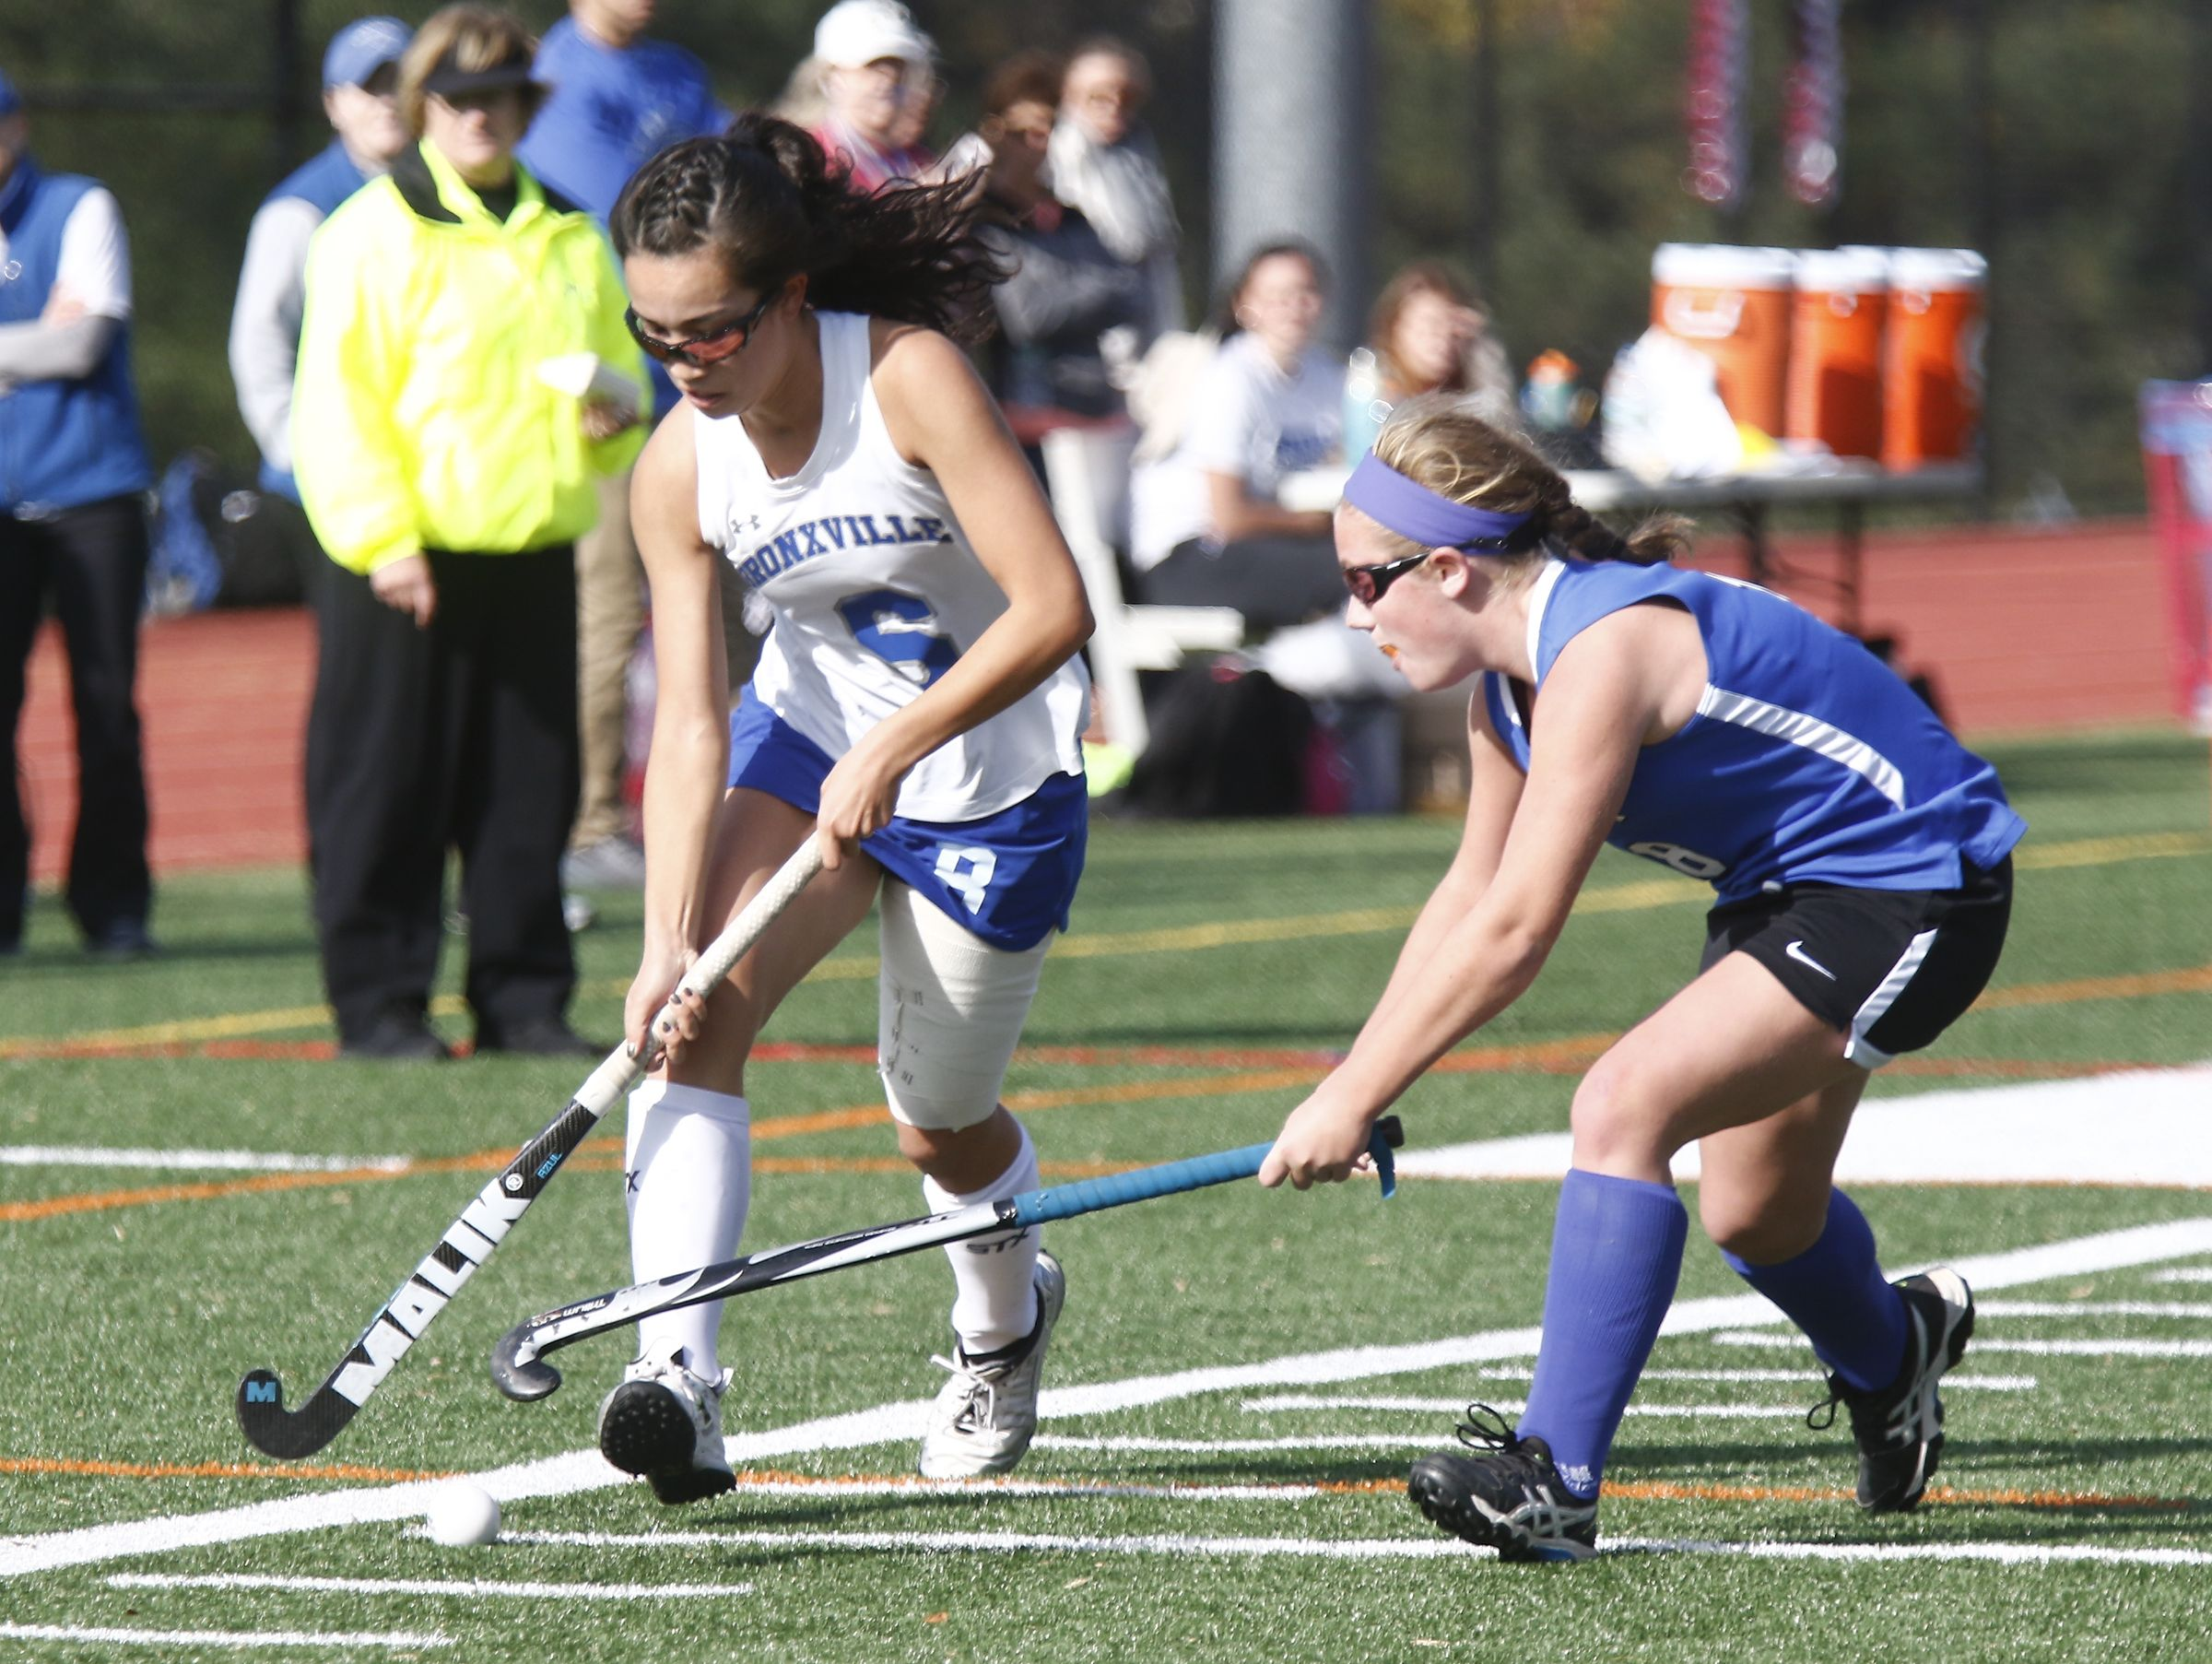 Bronxville's Hannah Weirens (15) works the ball up the side-line during their 2-0 win over Roundout Valley in the Class C regional championship field hockey game at Valhalla High School on Saturday, November 5, 2016.